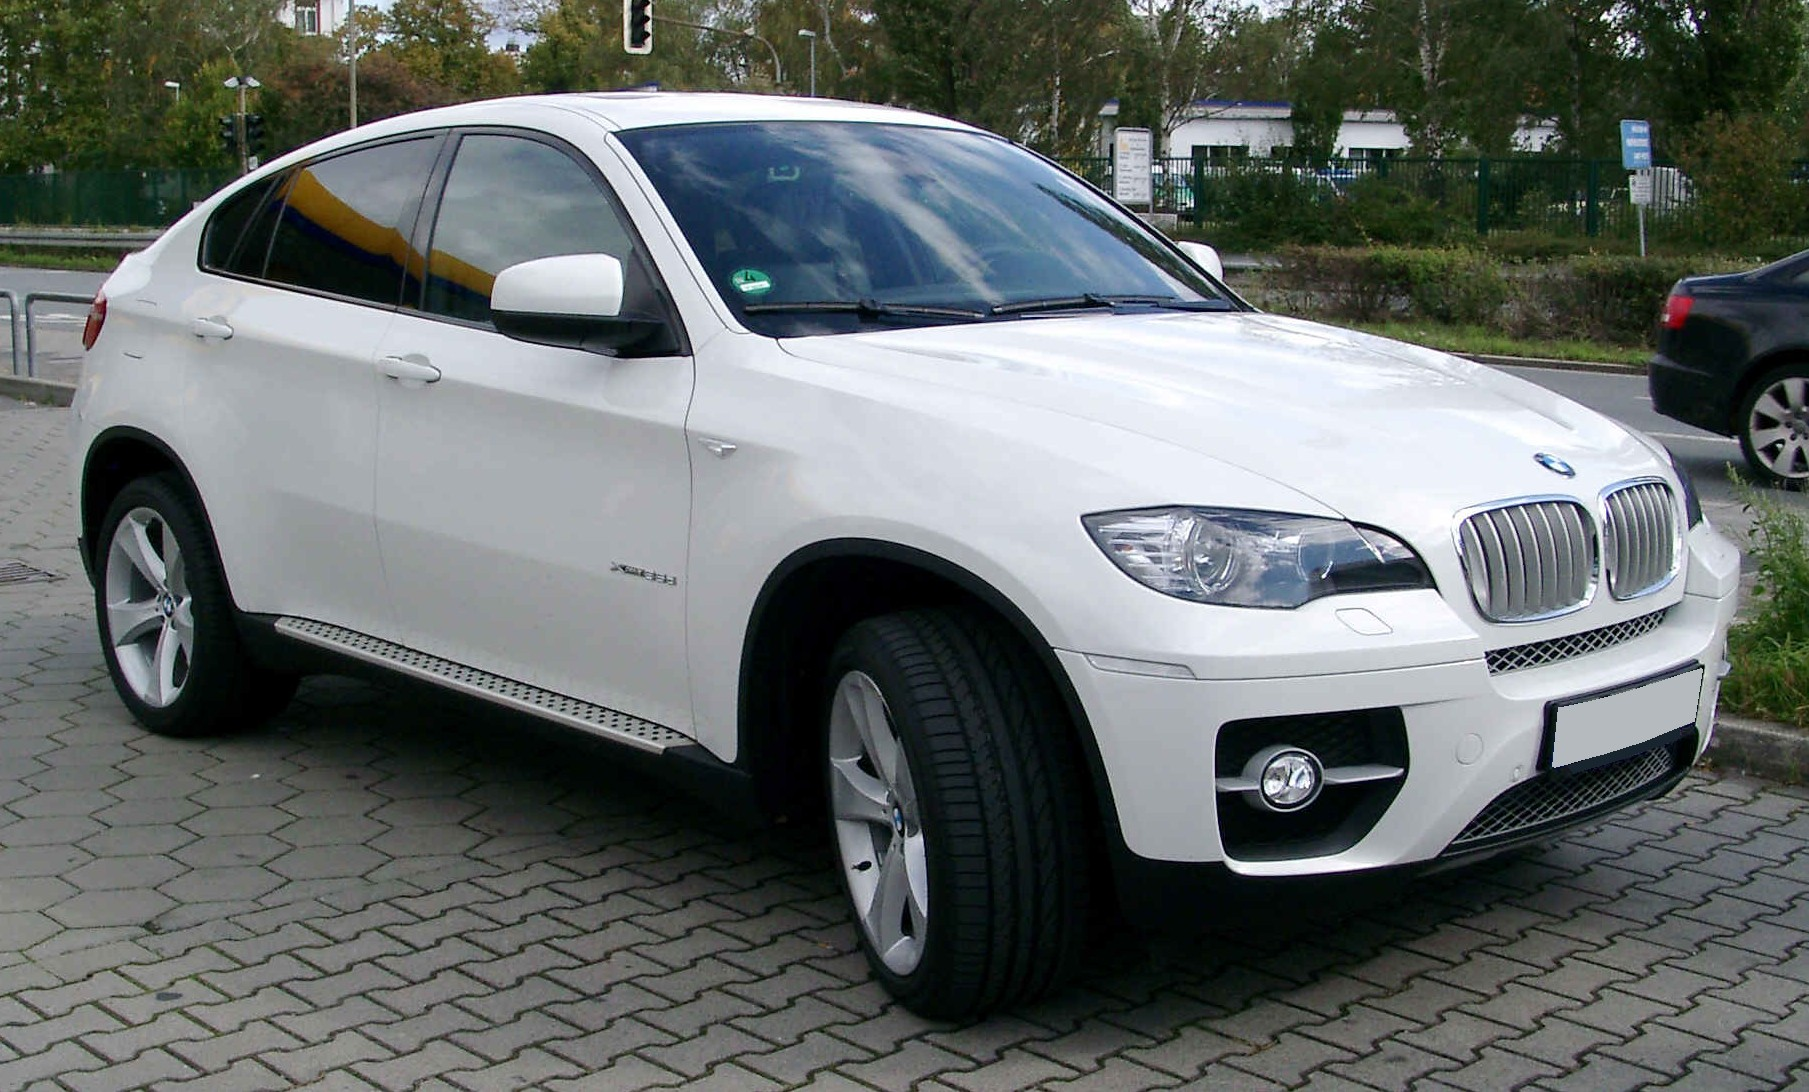 File BMW X6 front 20081002 jpg - Wikimedia Commons